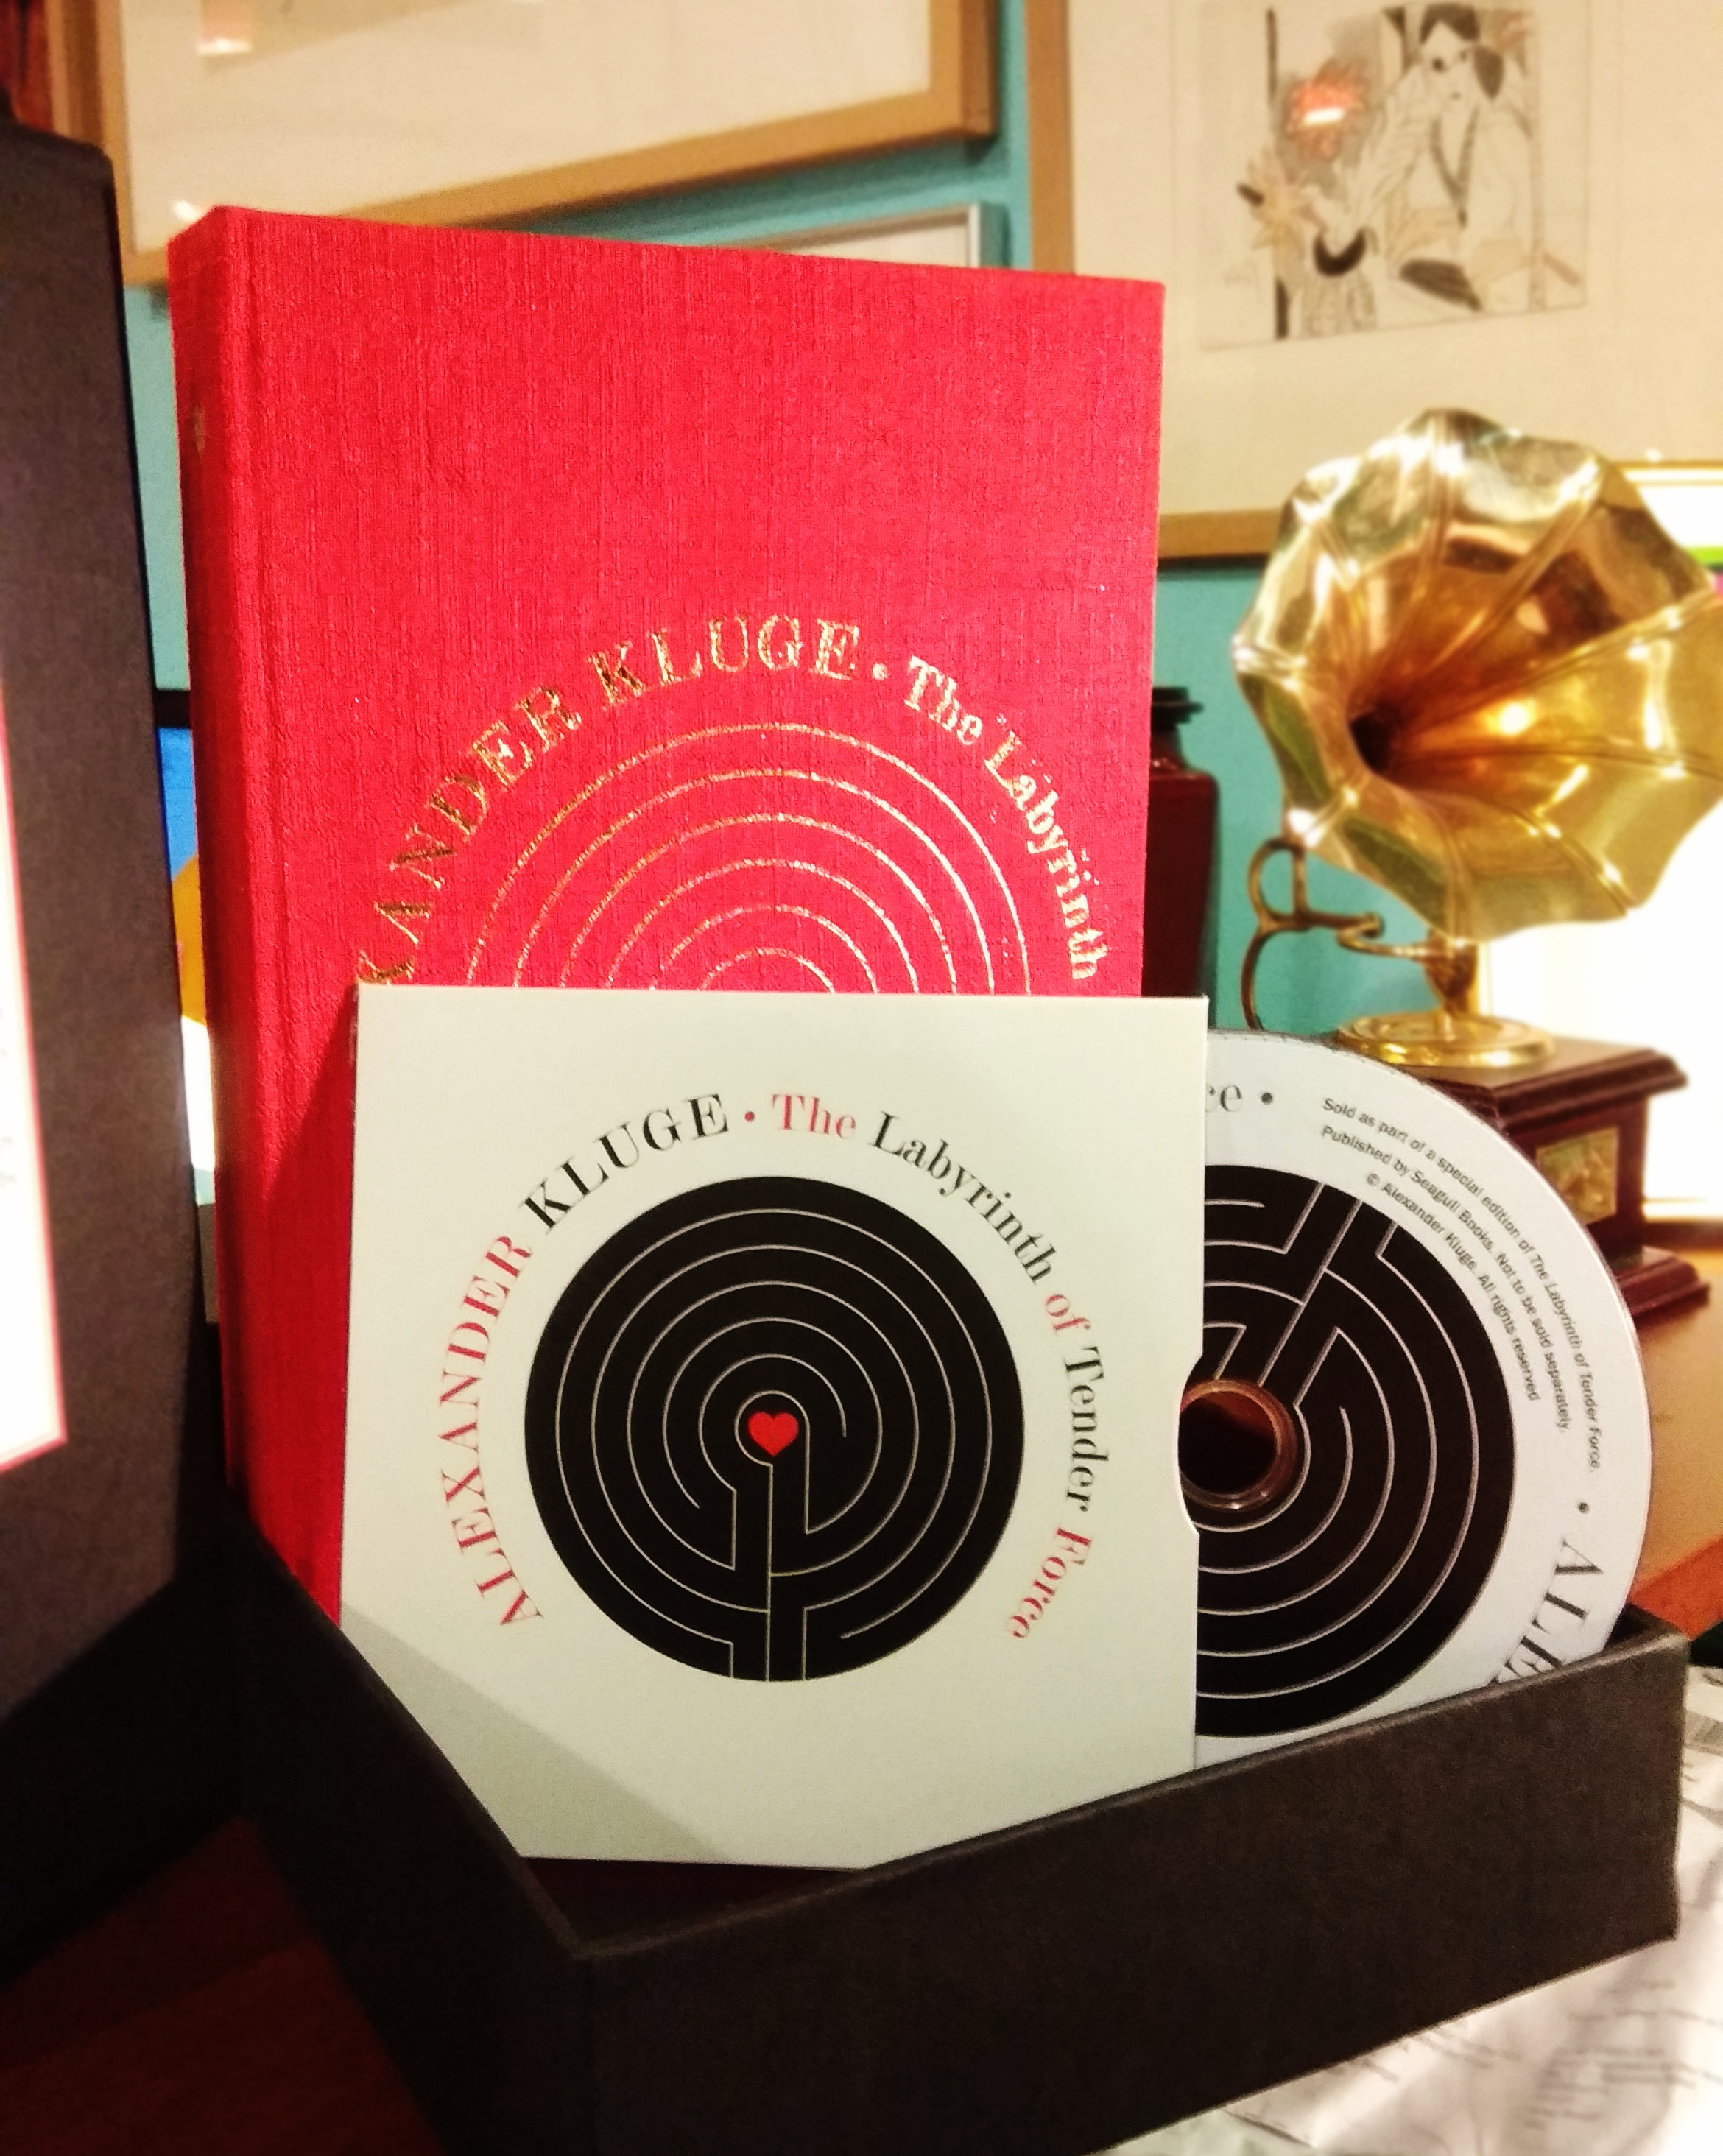 Labyrinth of Tender Force : 166 Love Stories (SPECIAL EDITION) by Alexander Kluge | Seagull Books